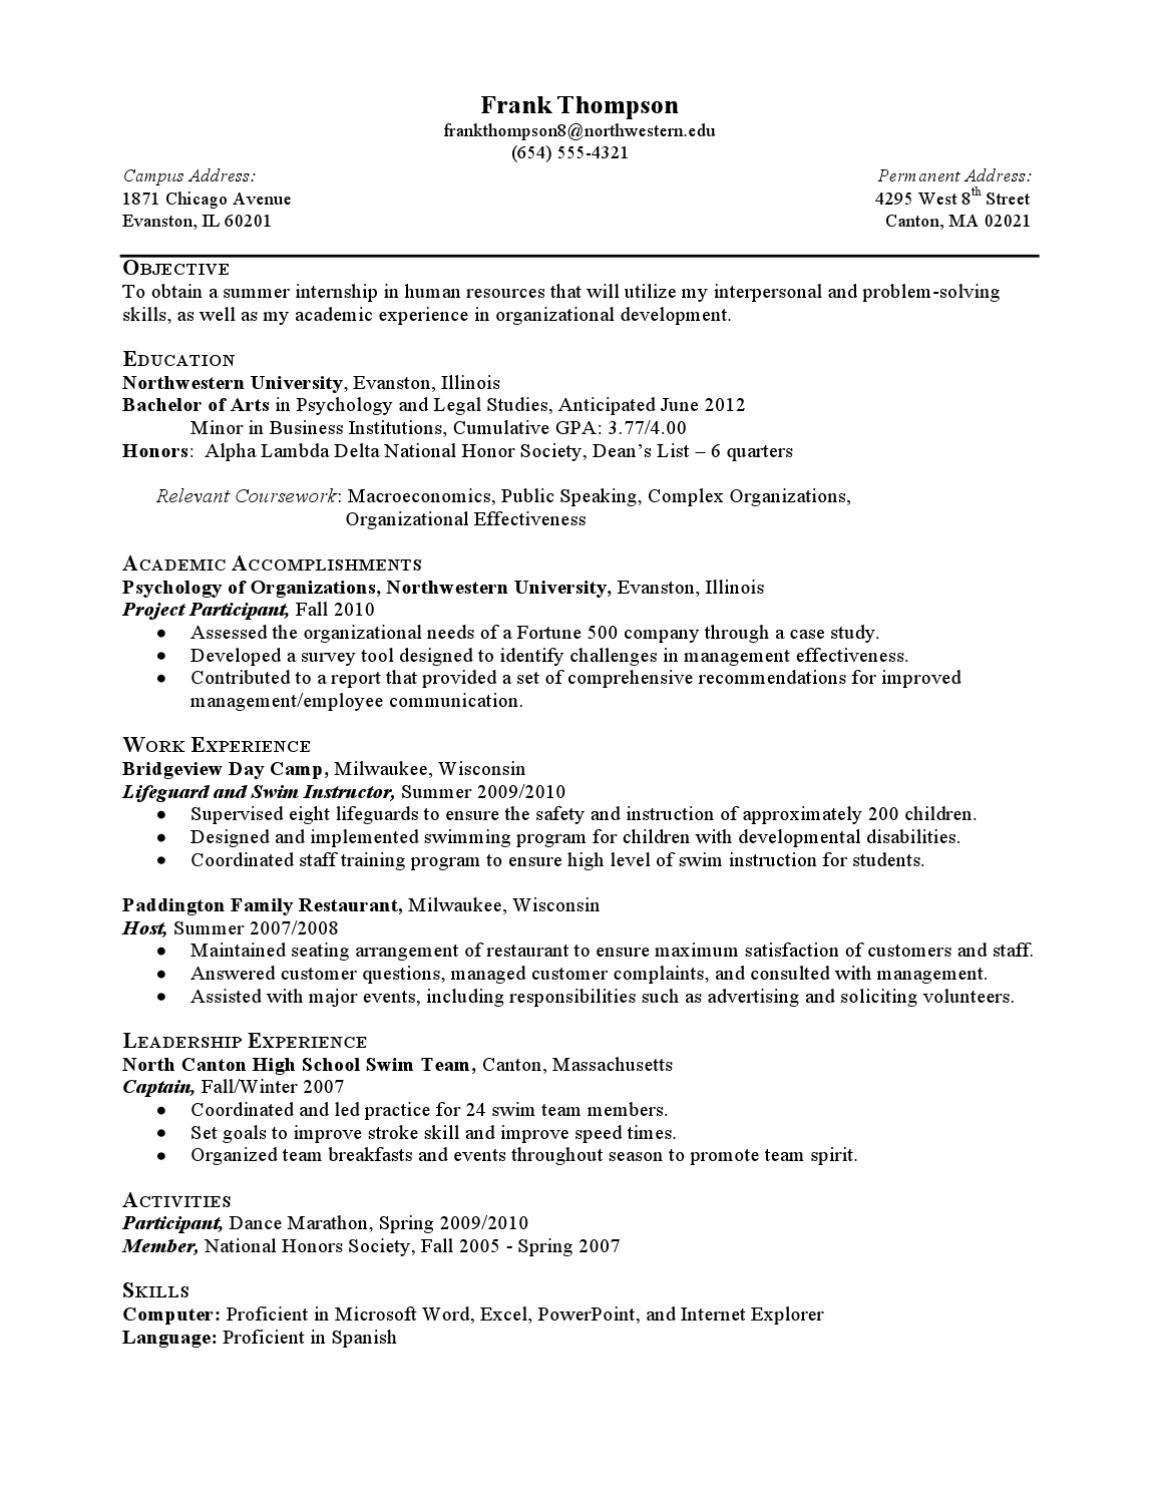 Food Inc Movie Worksheet Answers Internship Resume Sample Less Experienced by northwestern